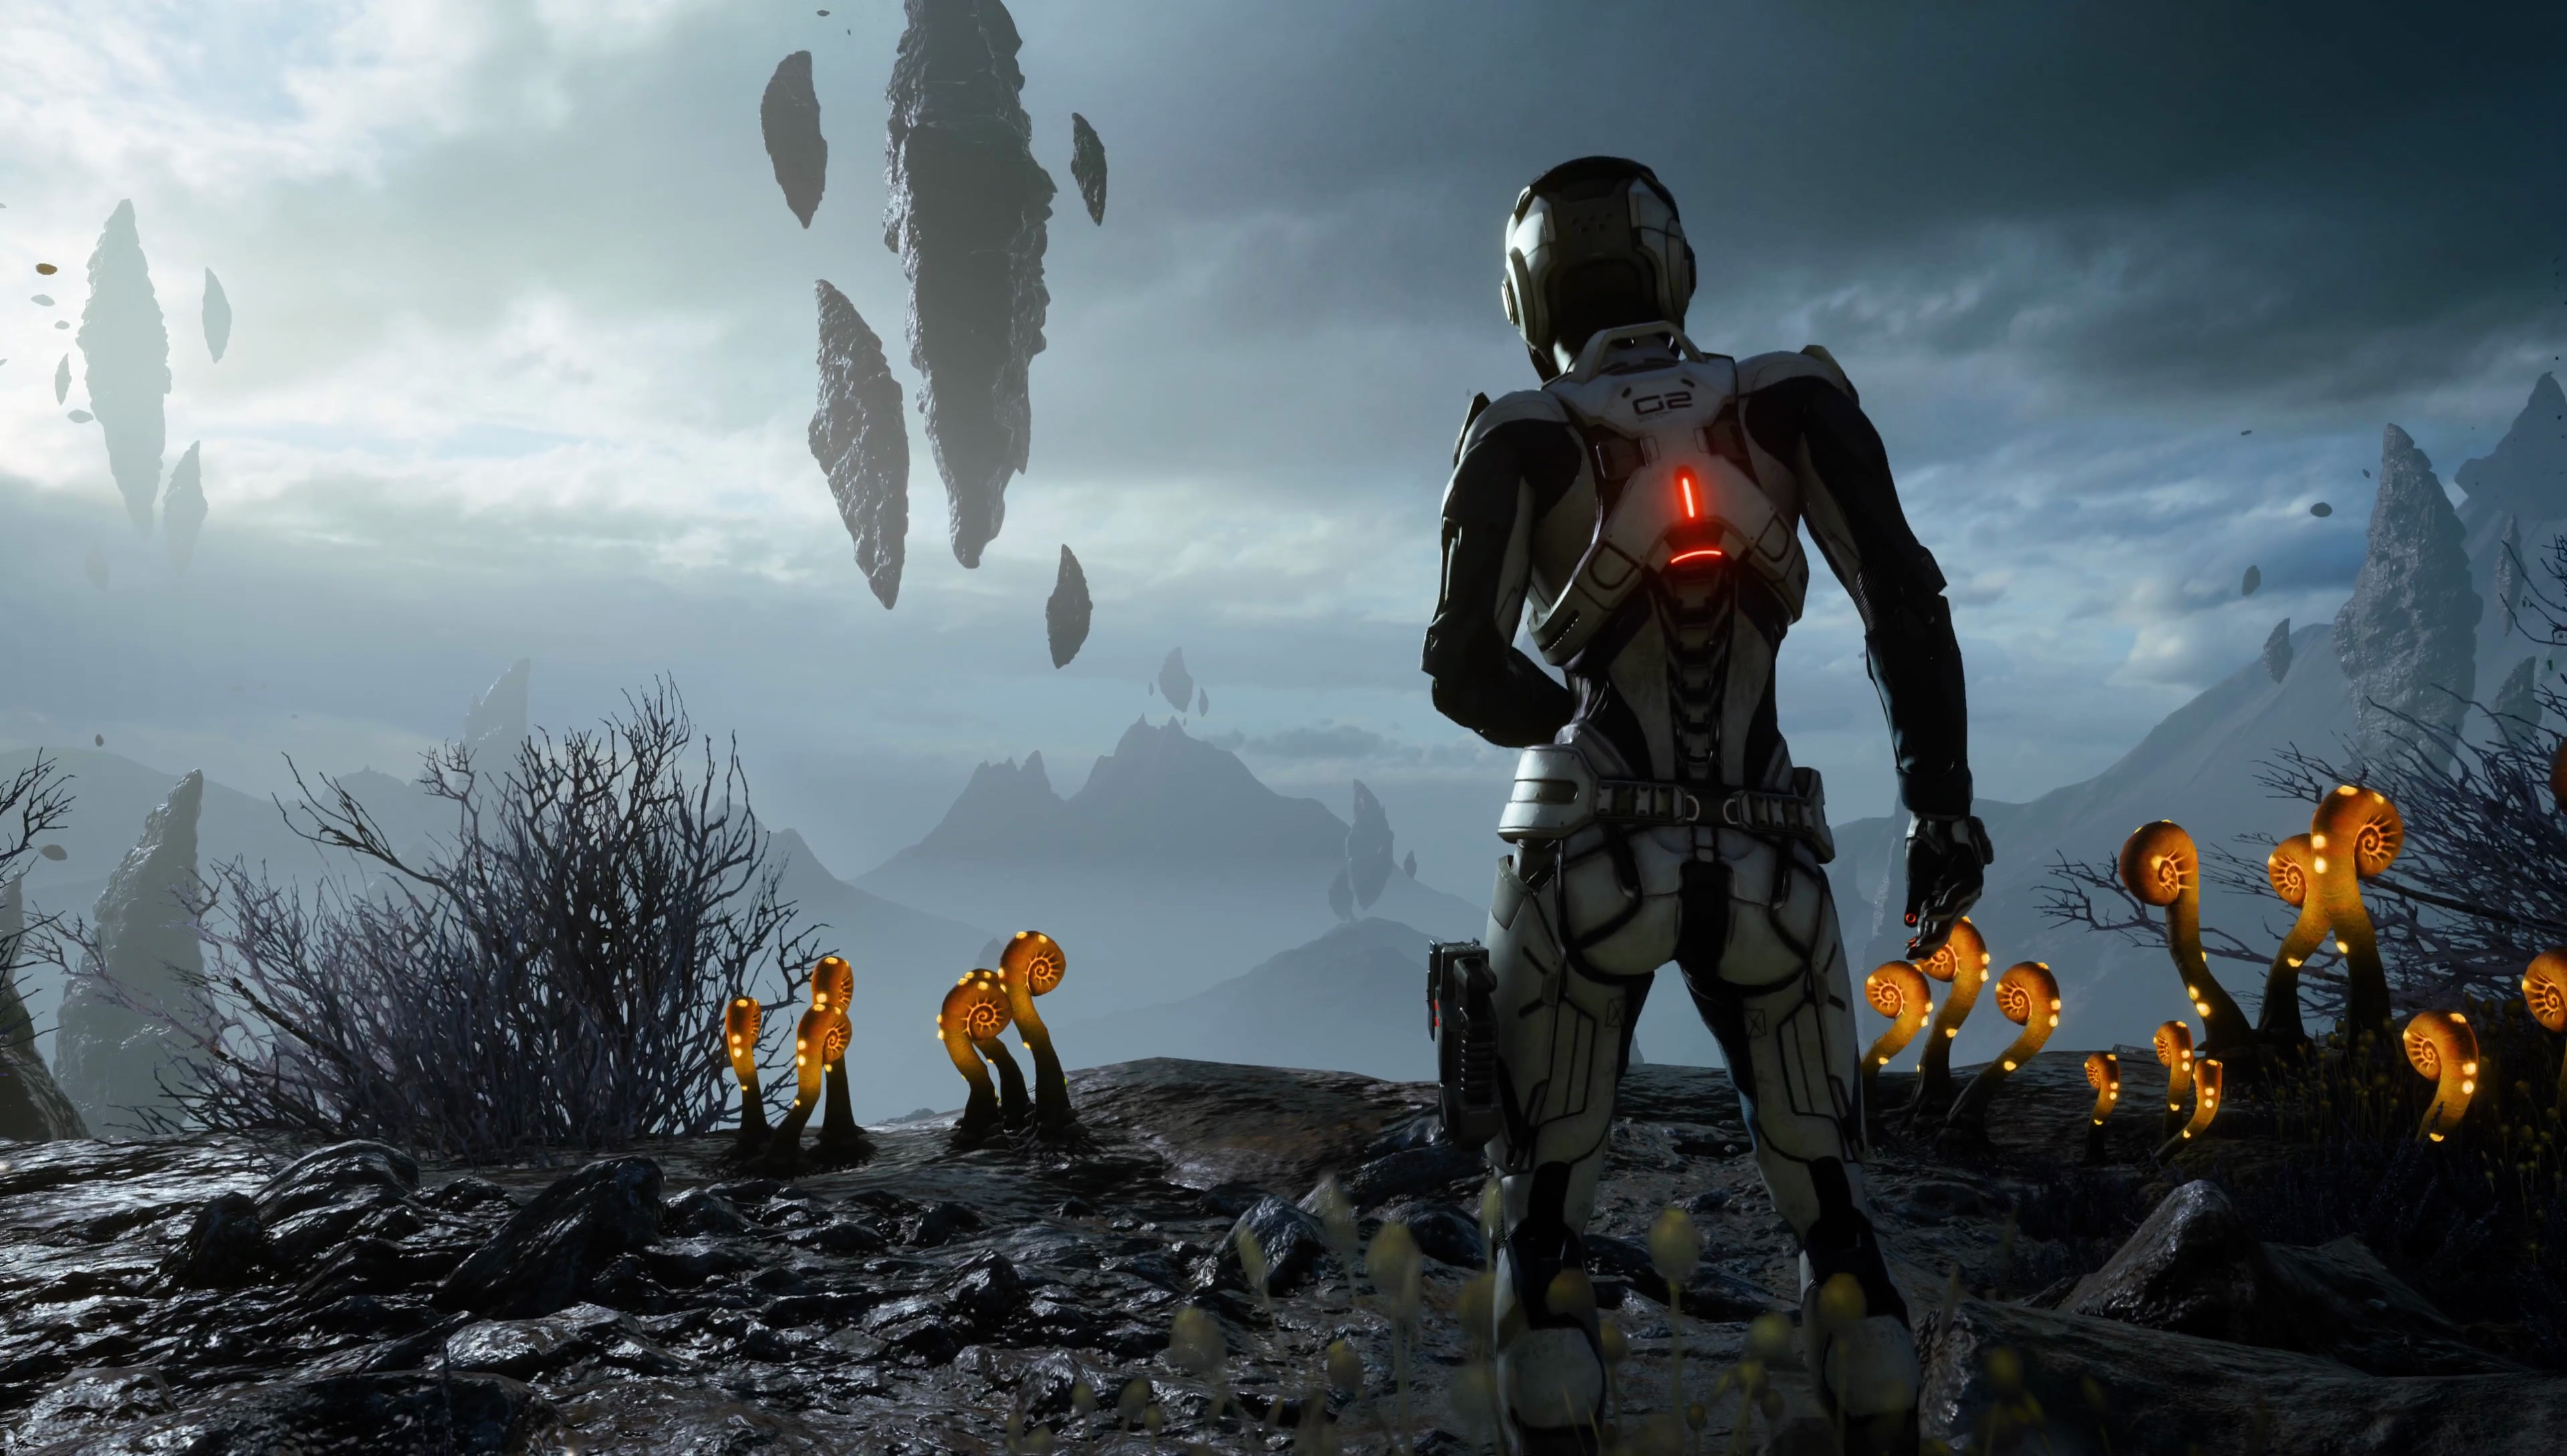 Mass Effect Andromeda Hd Game Hd Games 4k Wallpapers Images Backgrounds Photos And Pictures